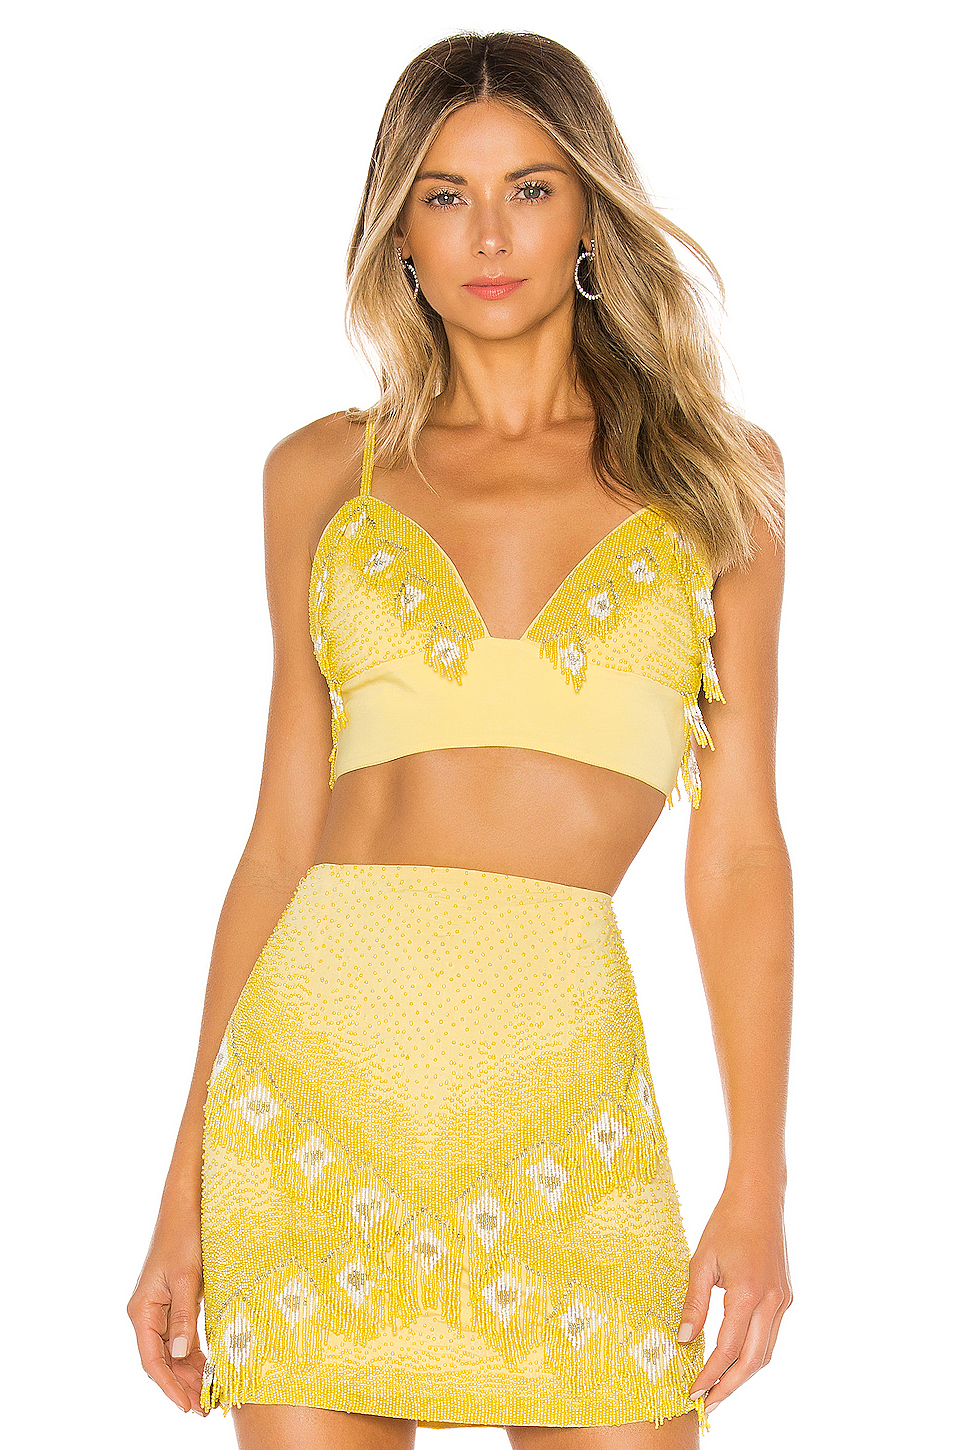 X by NBD Marley Embellished Top